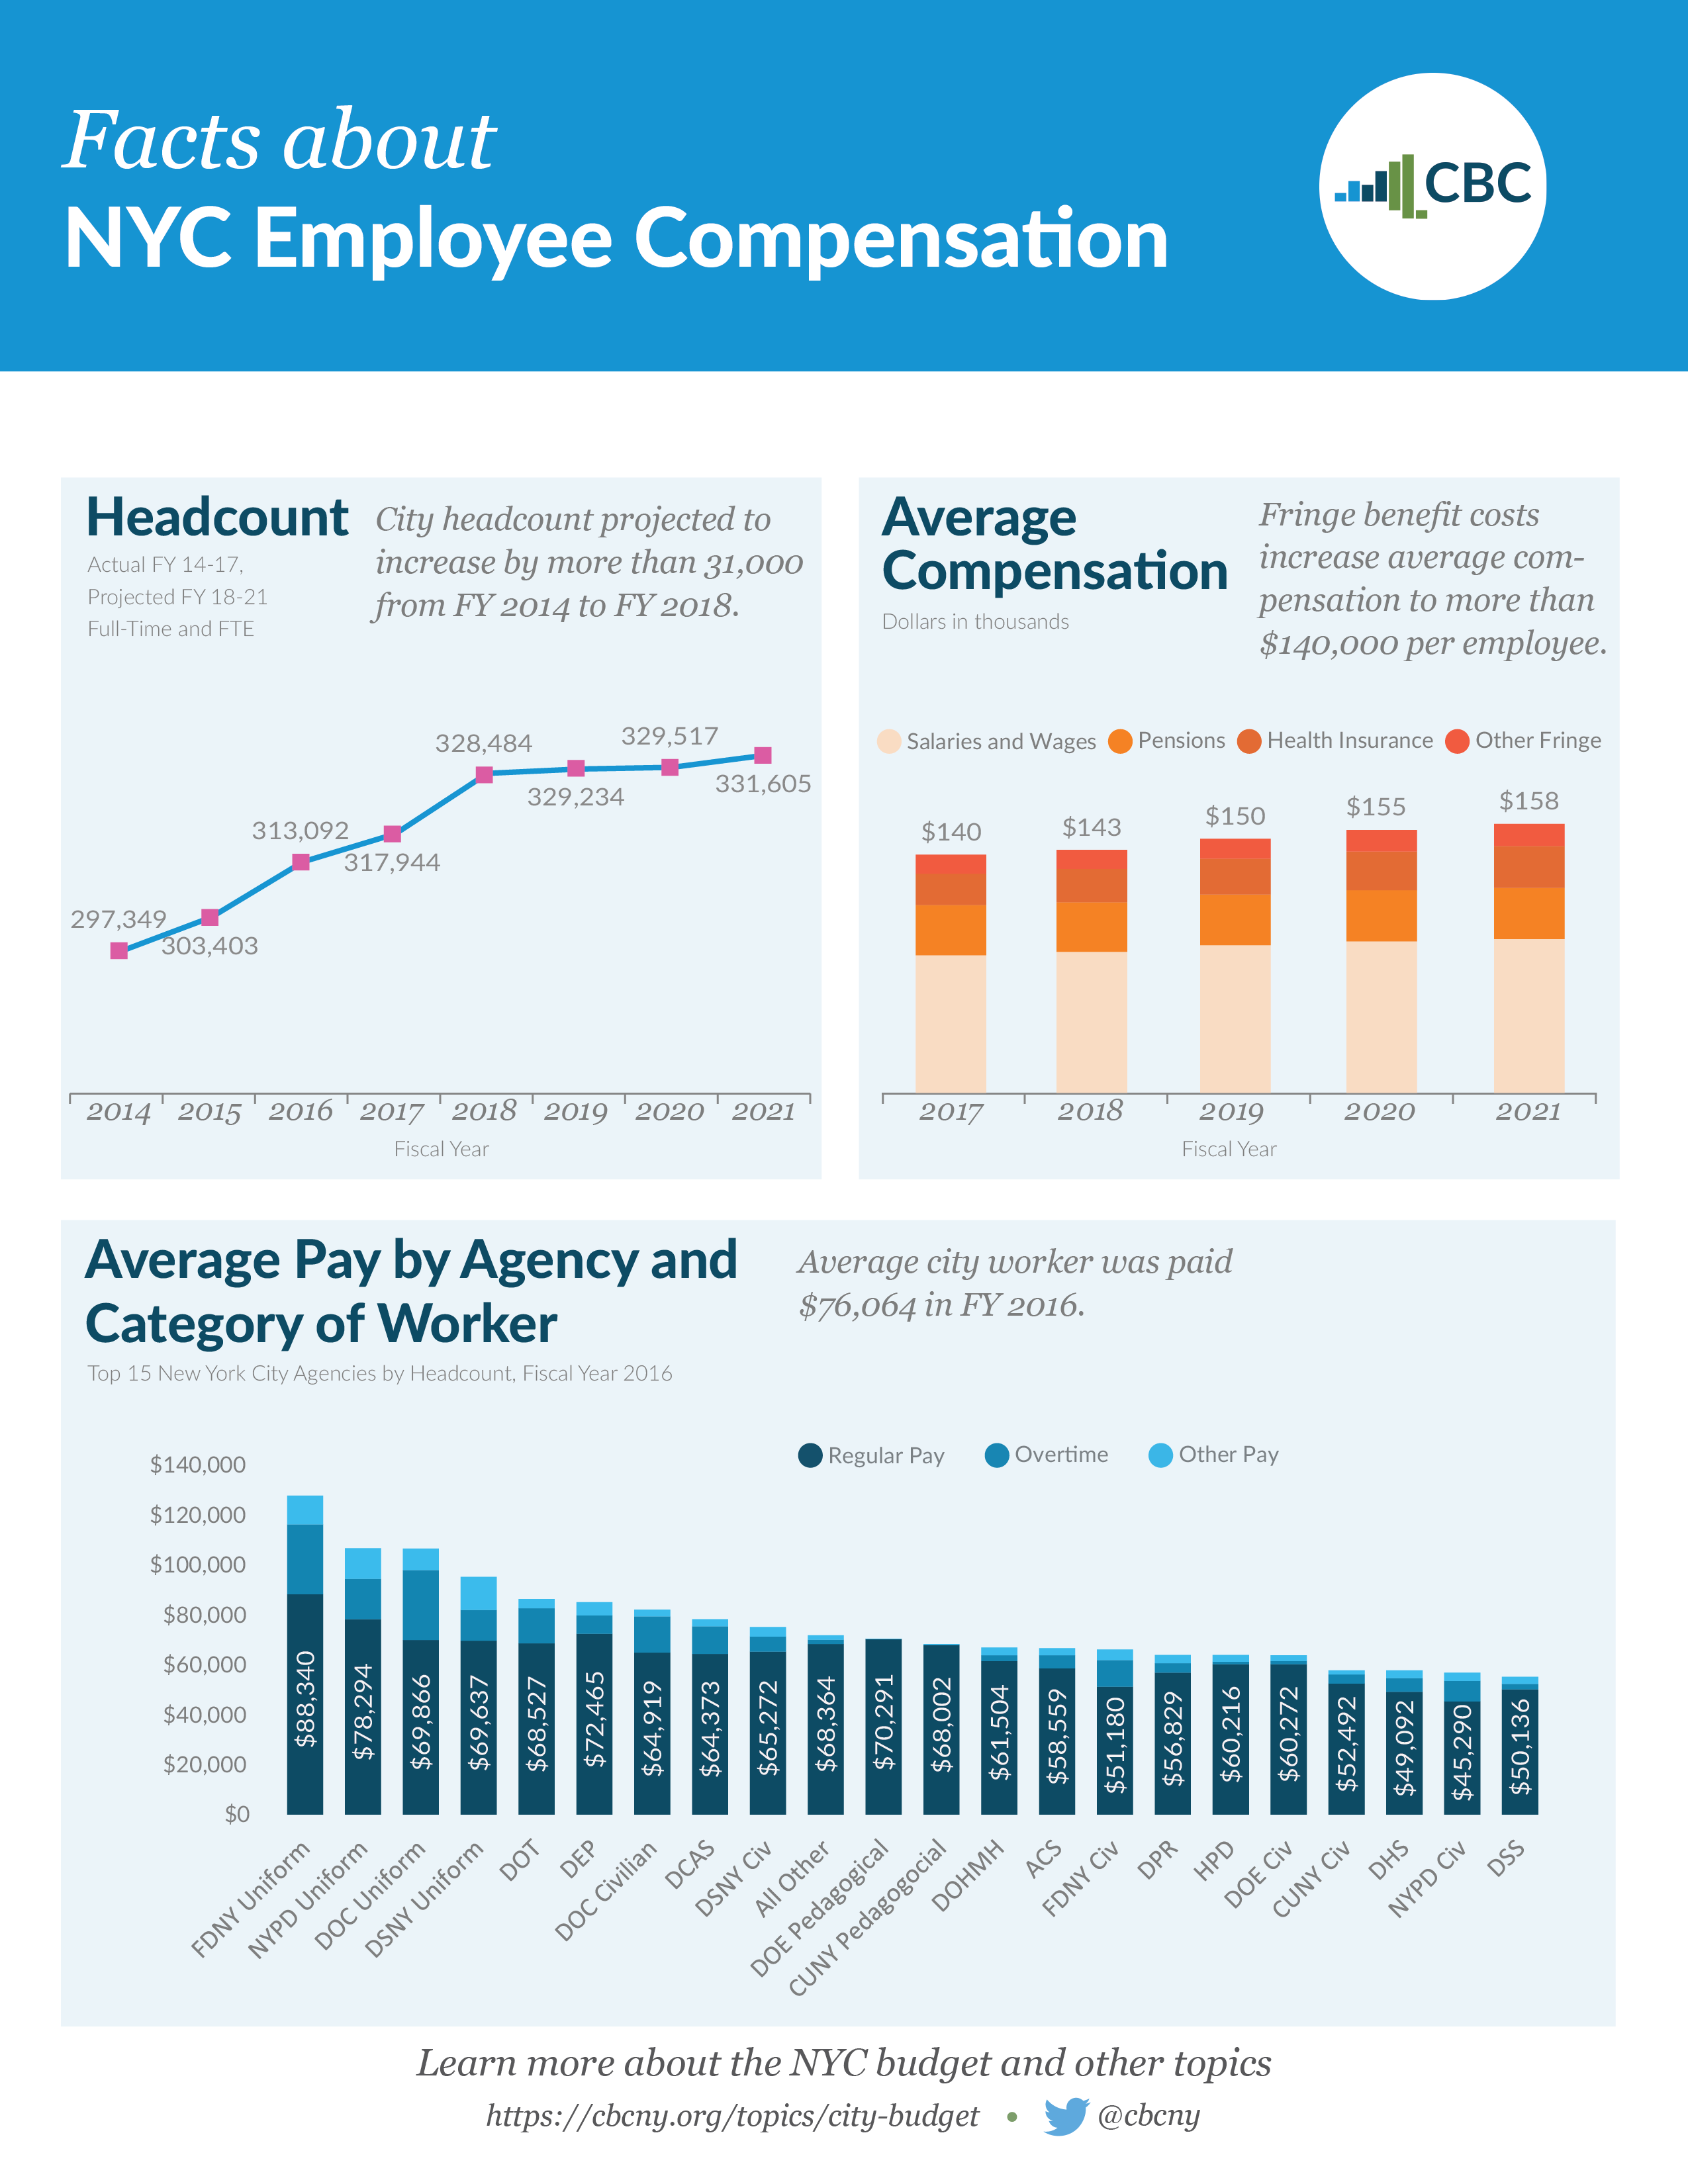 Facts about NYC Employee Compensation